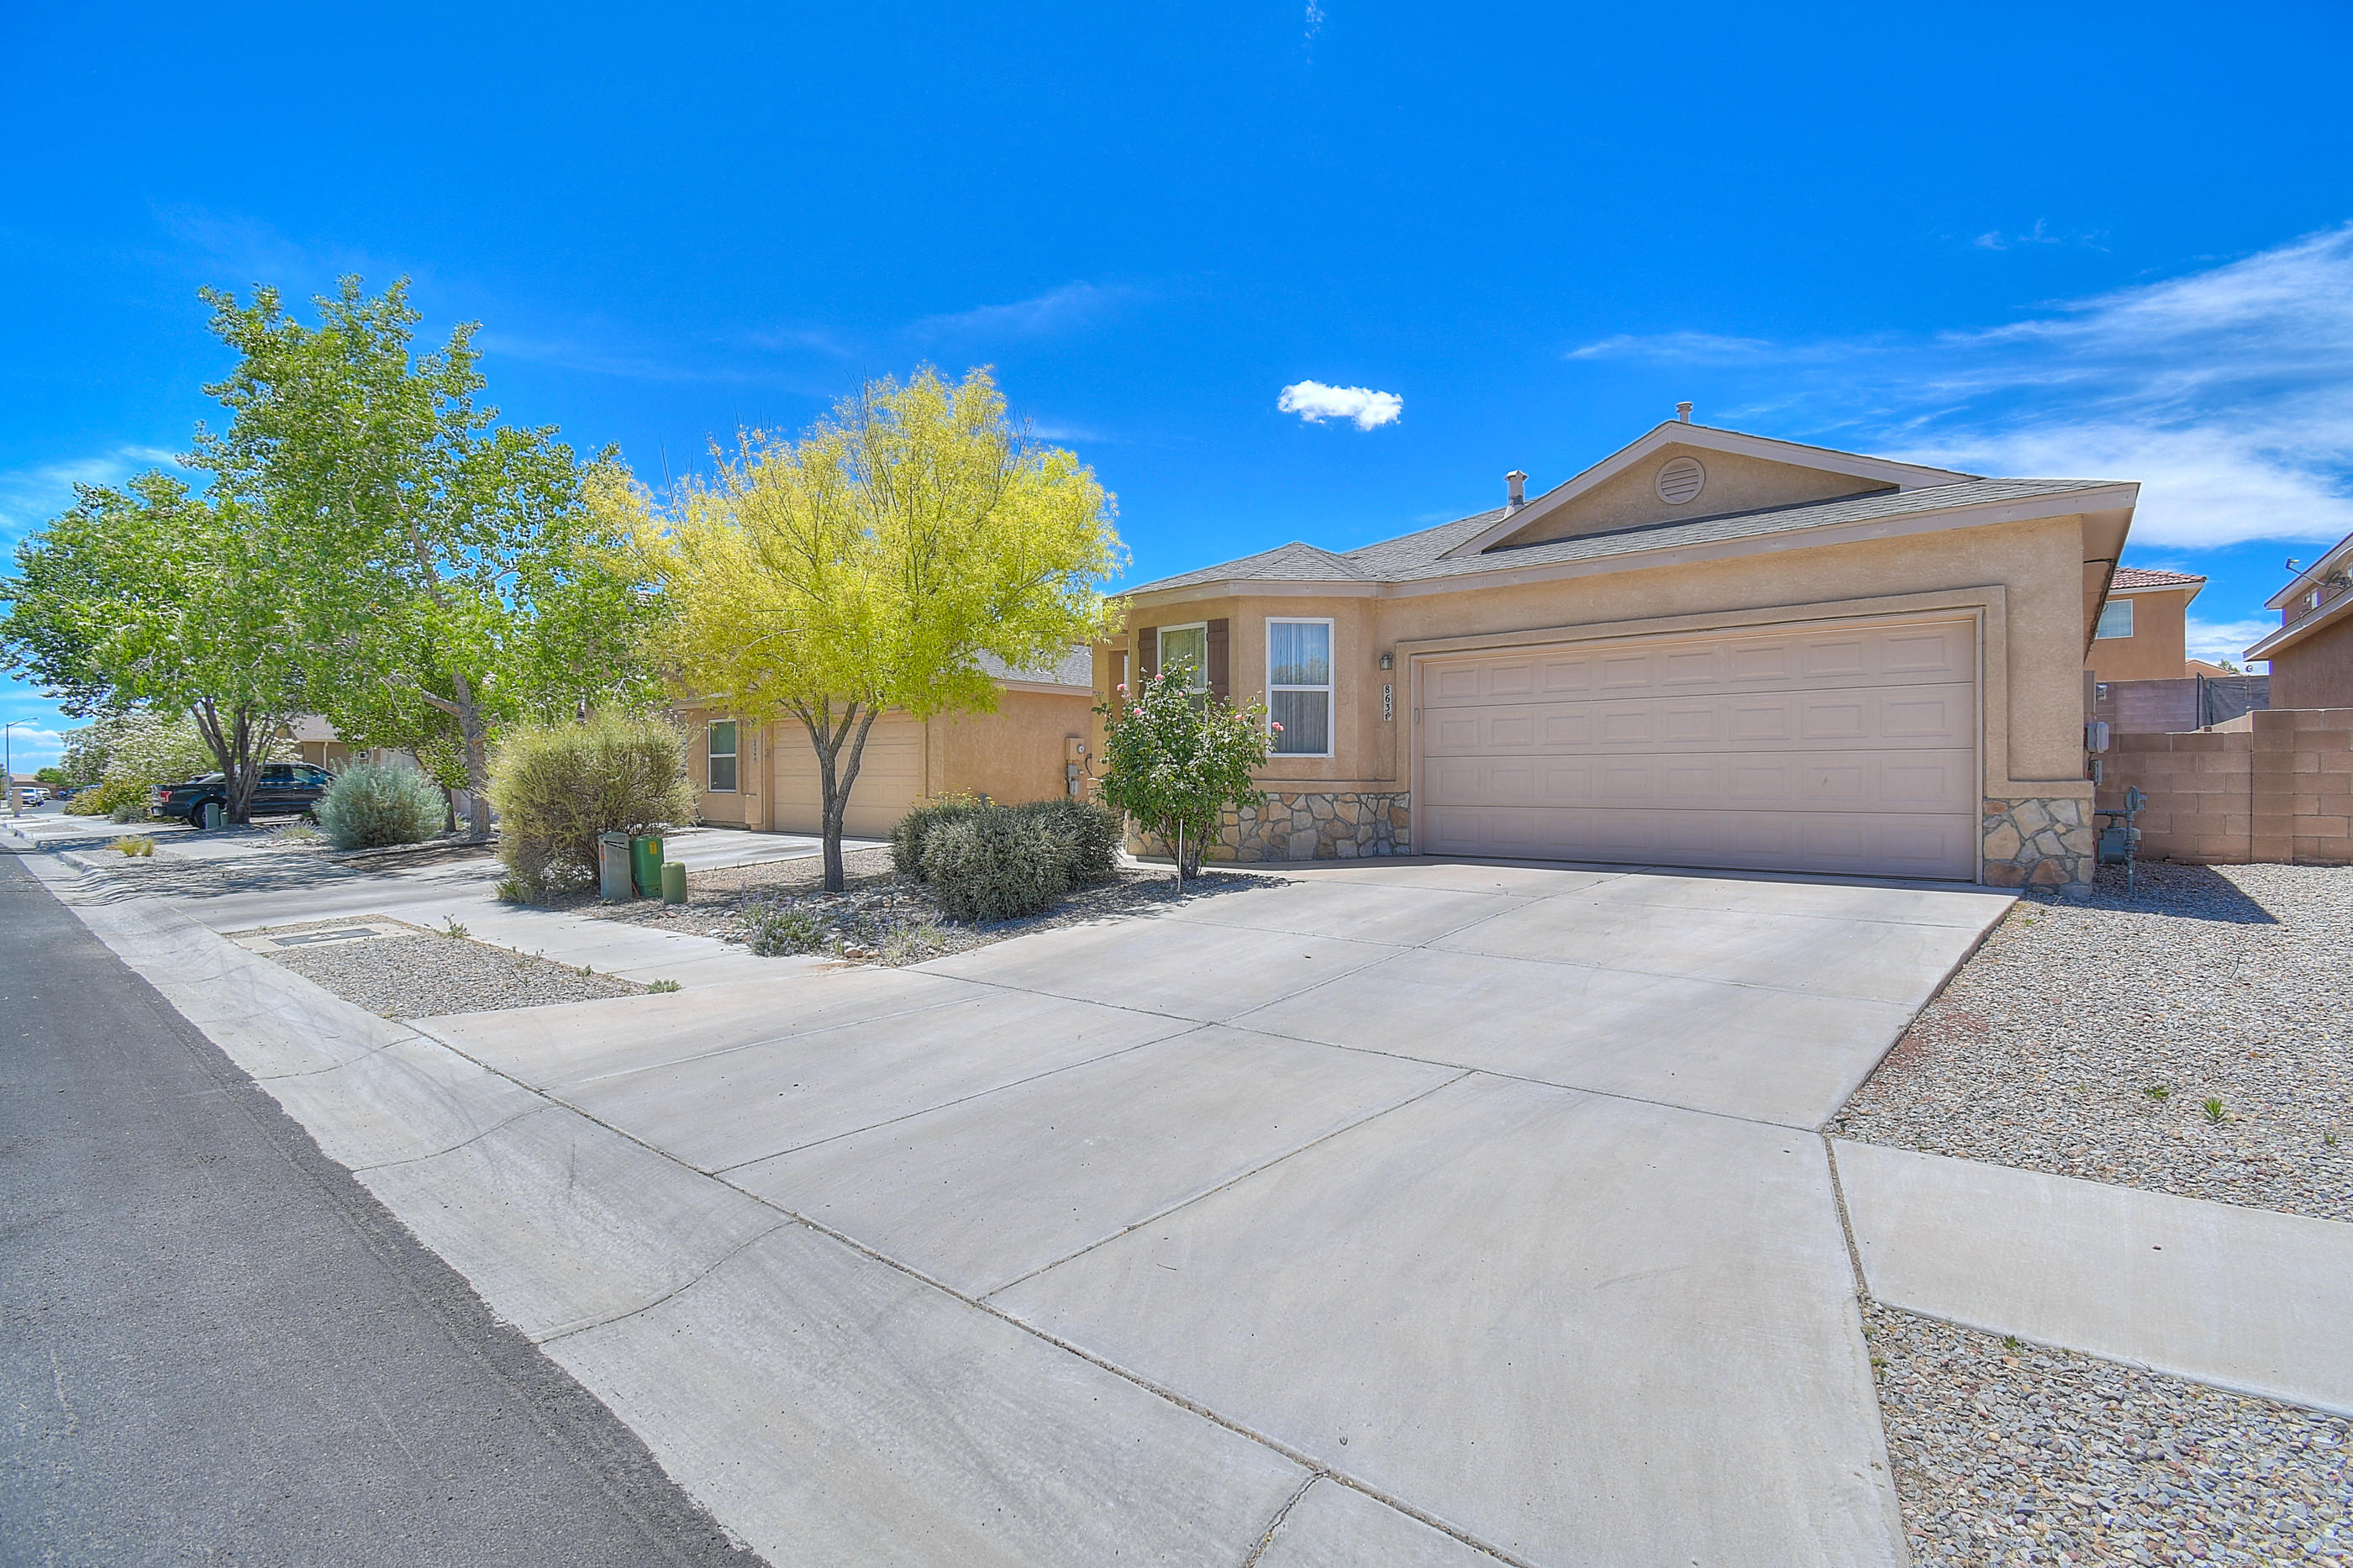 Welcome to your new home!!  Enter into this well maintained home in the desirable Sundoro Subdivision and enjoy the open floorplan and all this 3 bedroom 2 bath home has to offer.  You'll love spending outdoor time in this lovely backyard.